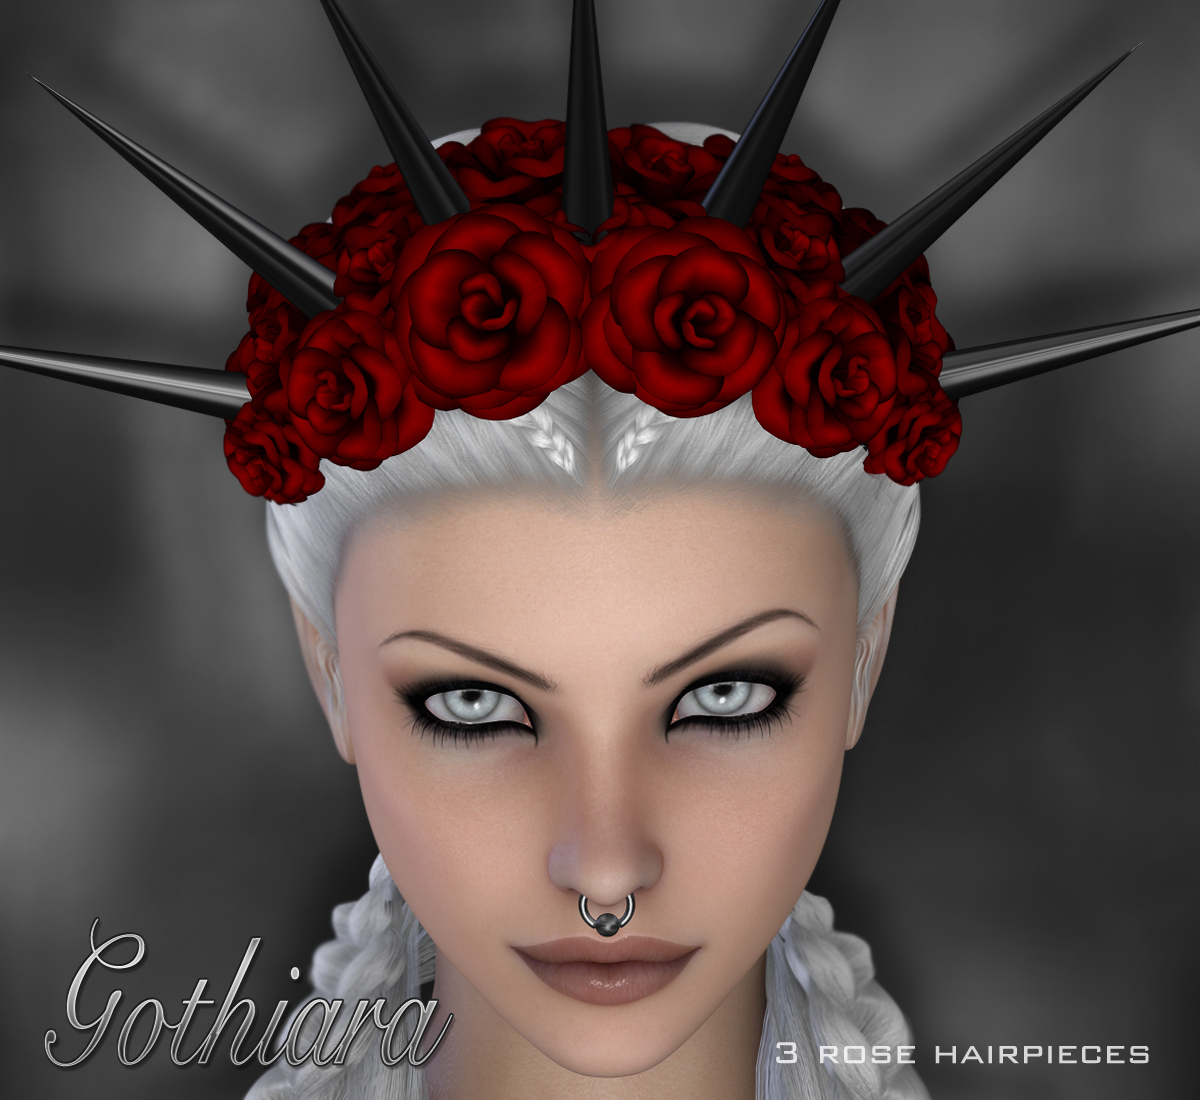 Gothiara Rose - Hair Piece Props by digiPixel